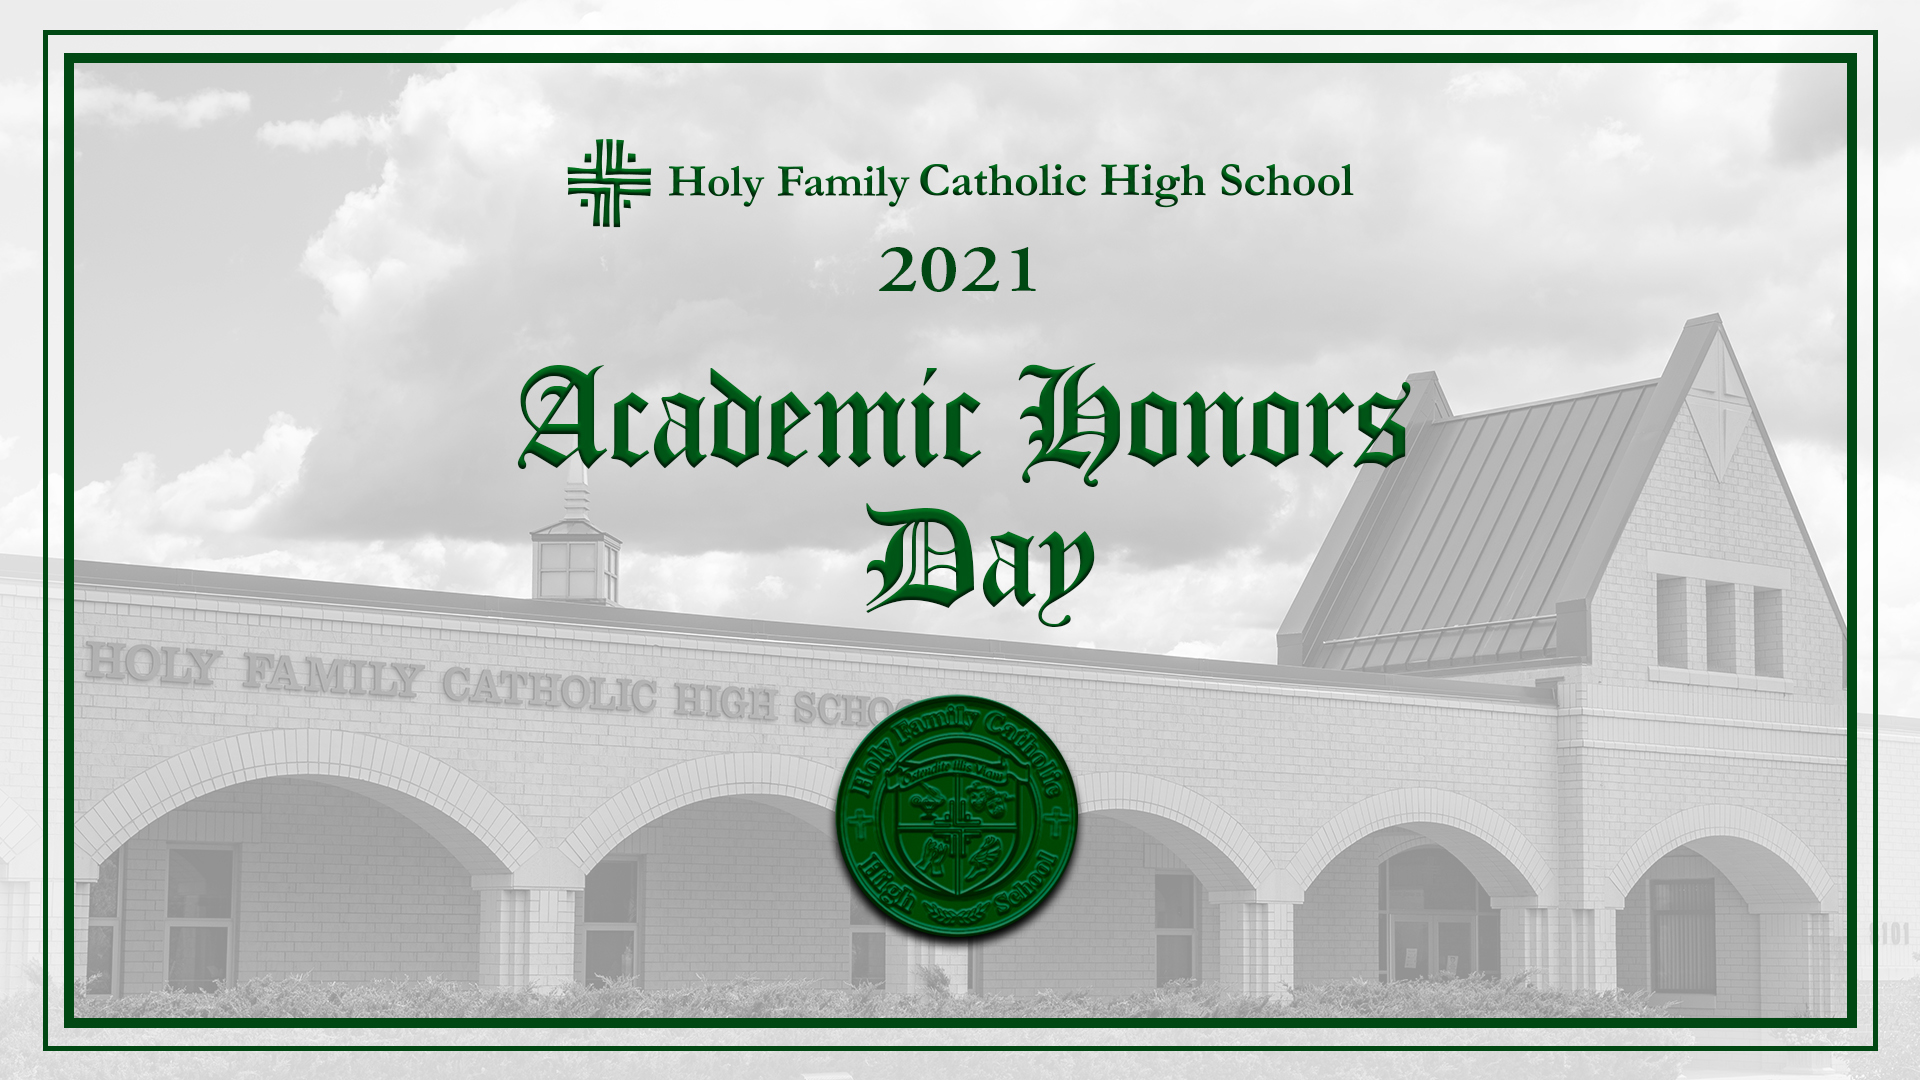 2021 Academic Honors Featured Image.